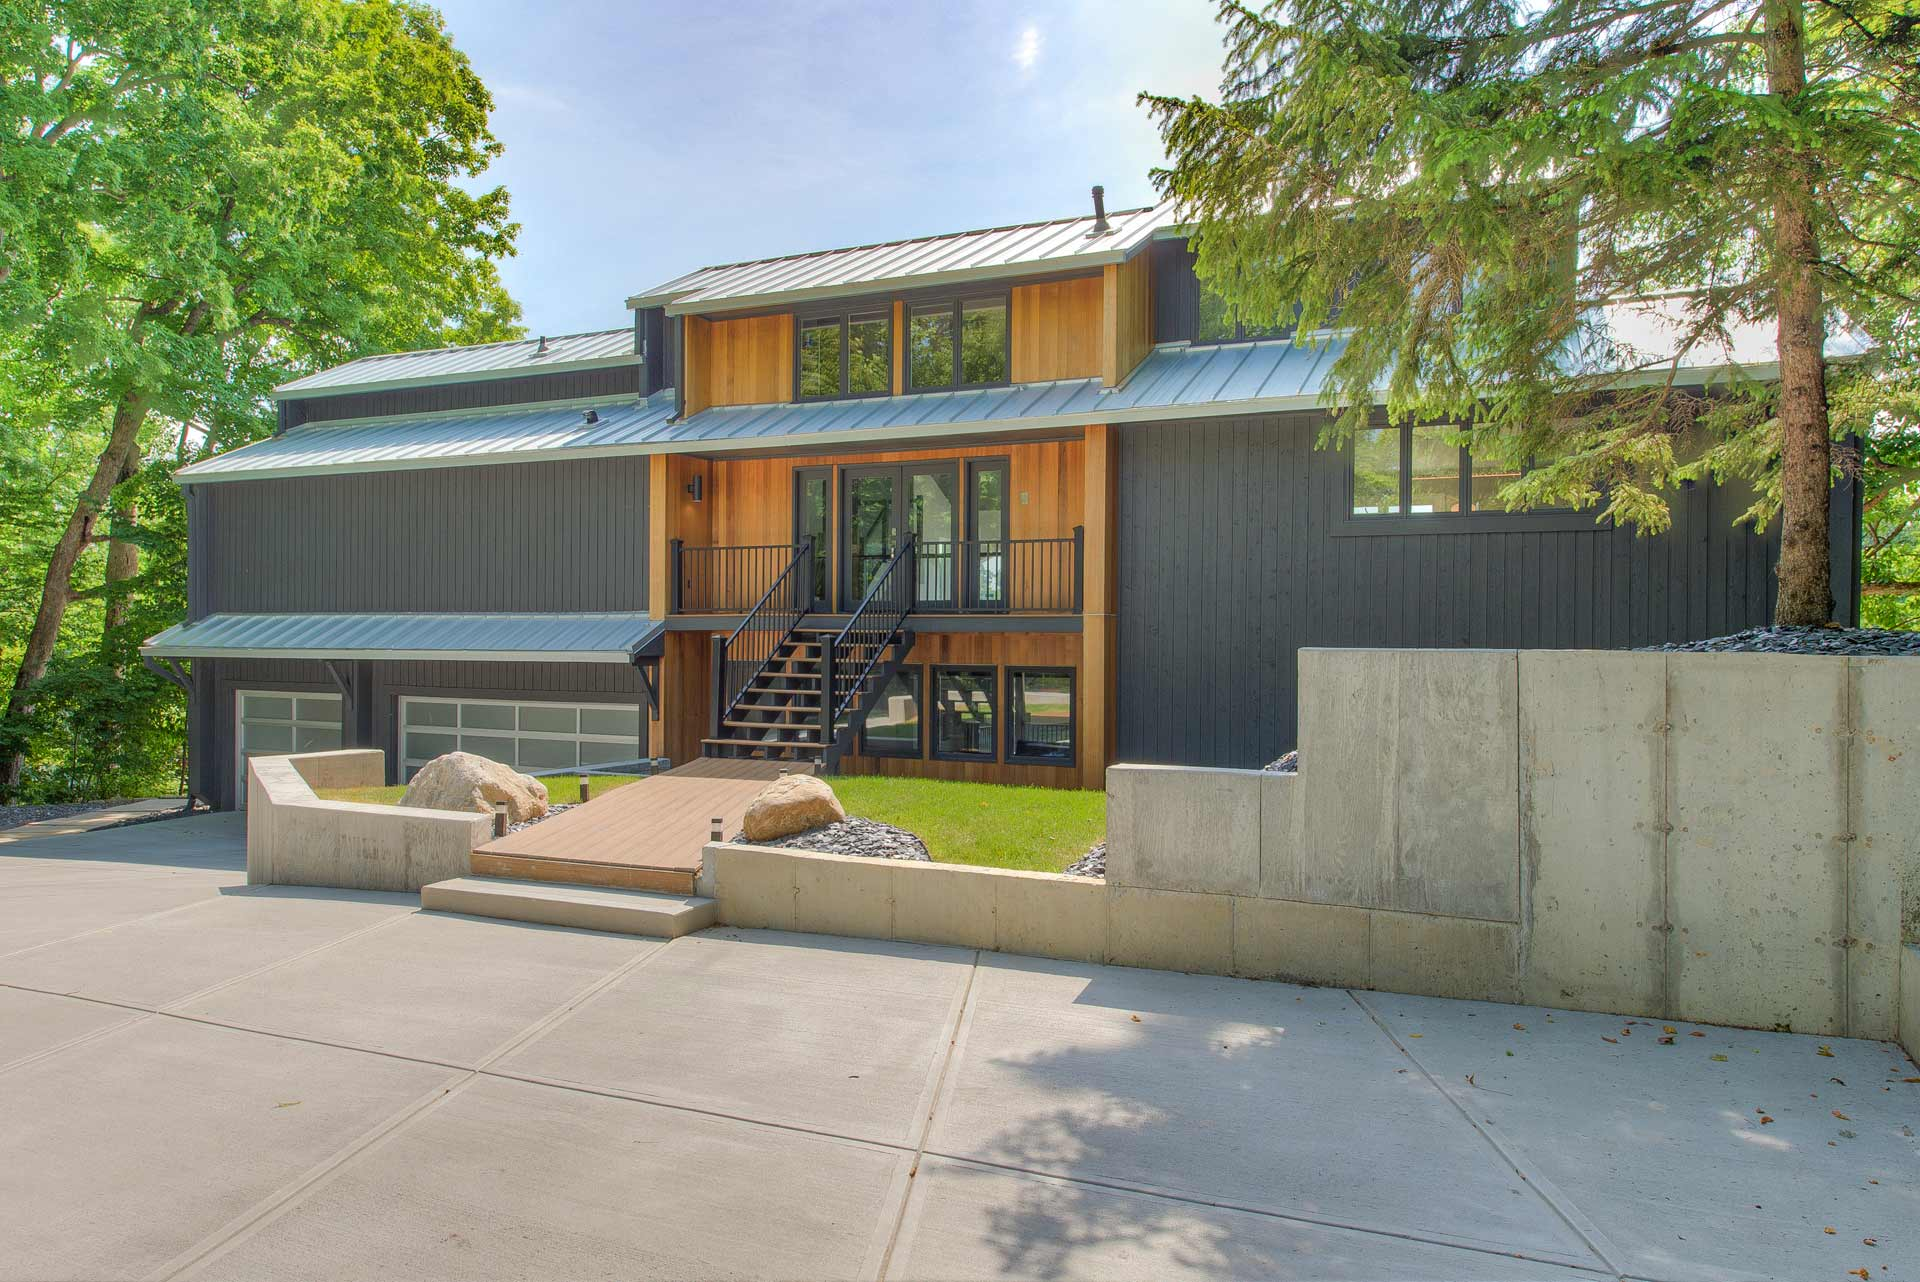 Front exterior elevation has been updated with new modern color, new silver standing seam metal roofs, and Cedar-lined entry core - Reef Court Light Renovation - Geist Reservoir - Indianapolis, IN - Photo by Structured Photography